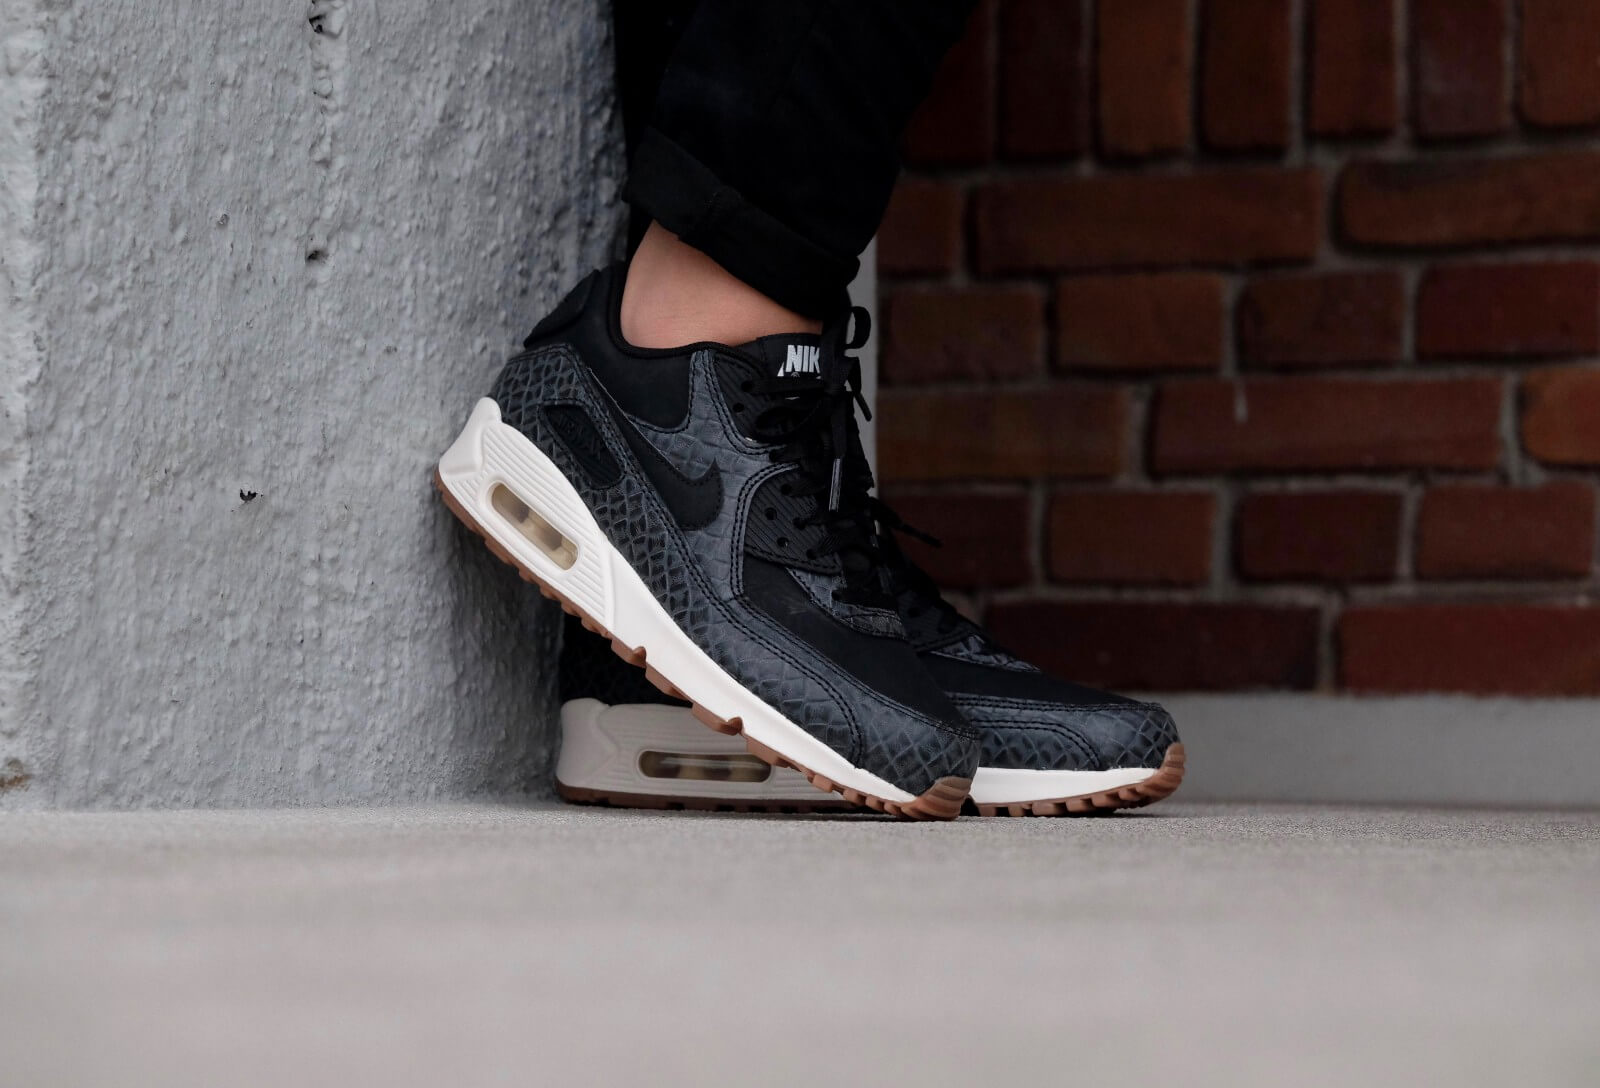 Nike Wmns Air Max 90 PRM Blackblack sail gum med brown 443817 010